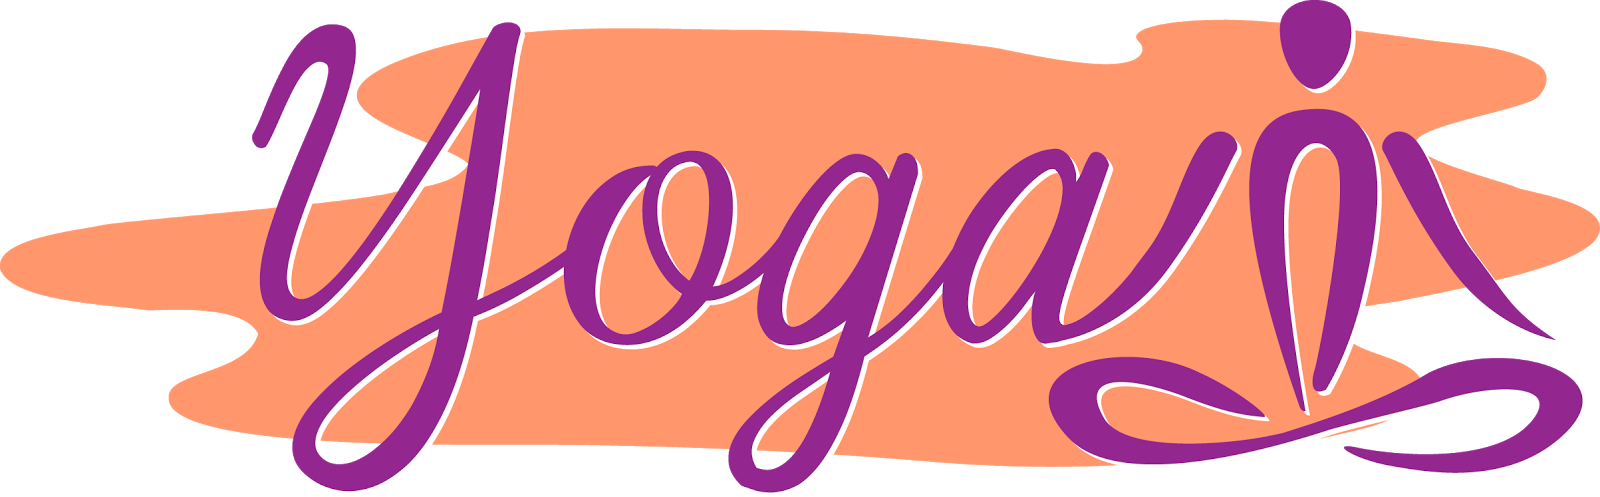 Yoga fitness class logo by Sarah Pecorino for The Zoo Health Club NH